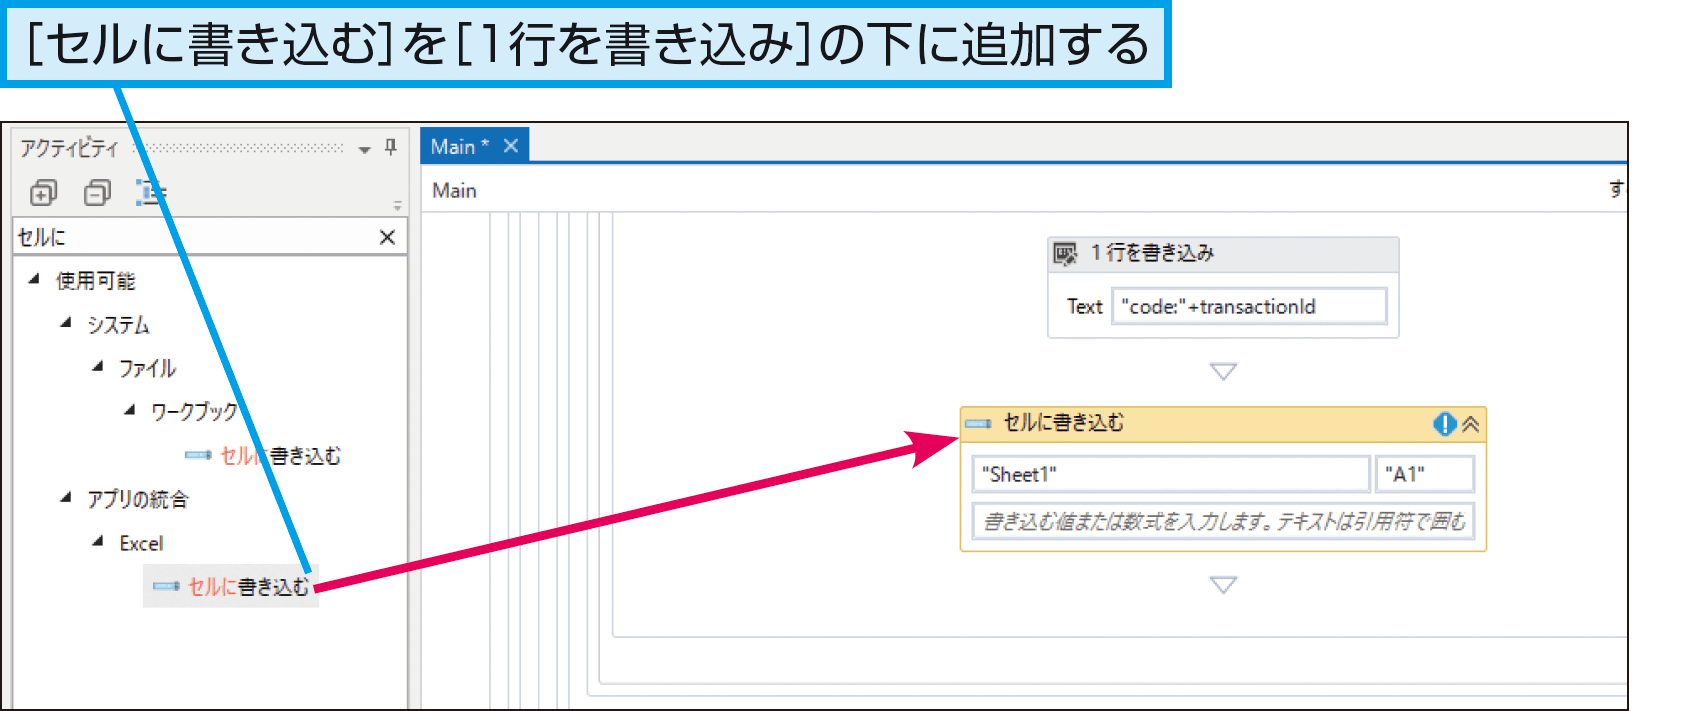 Uipath Write Cell For Each